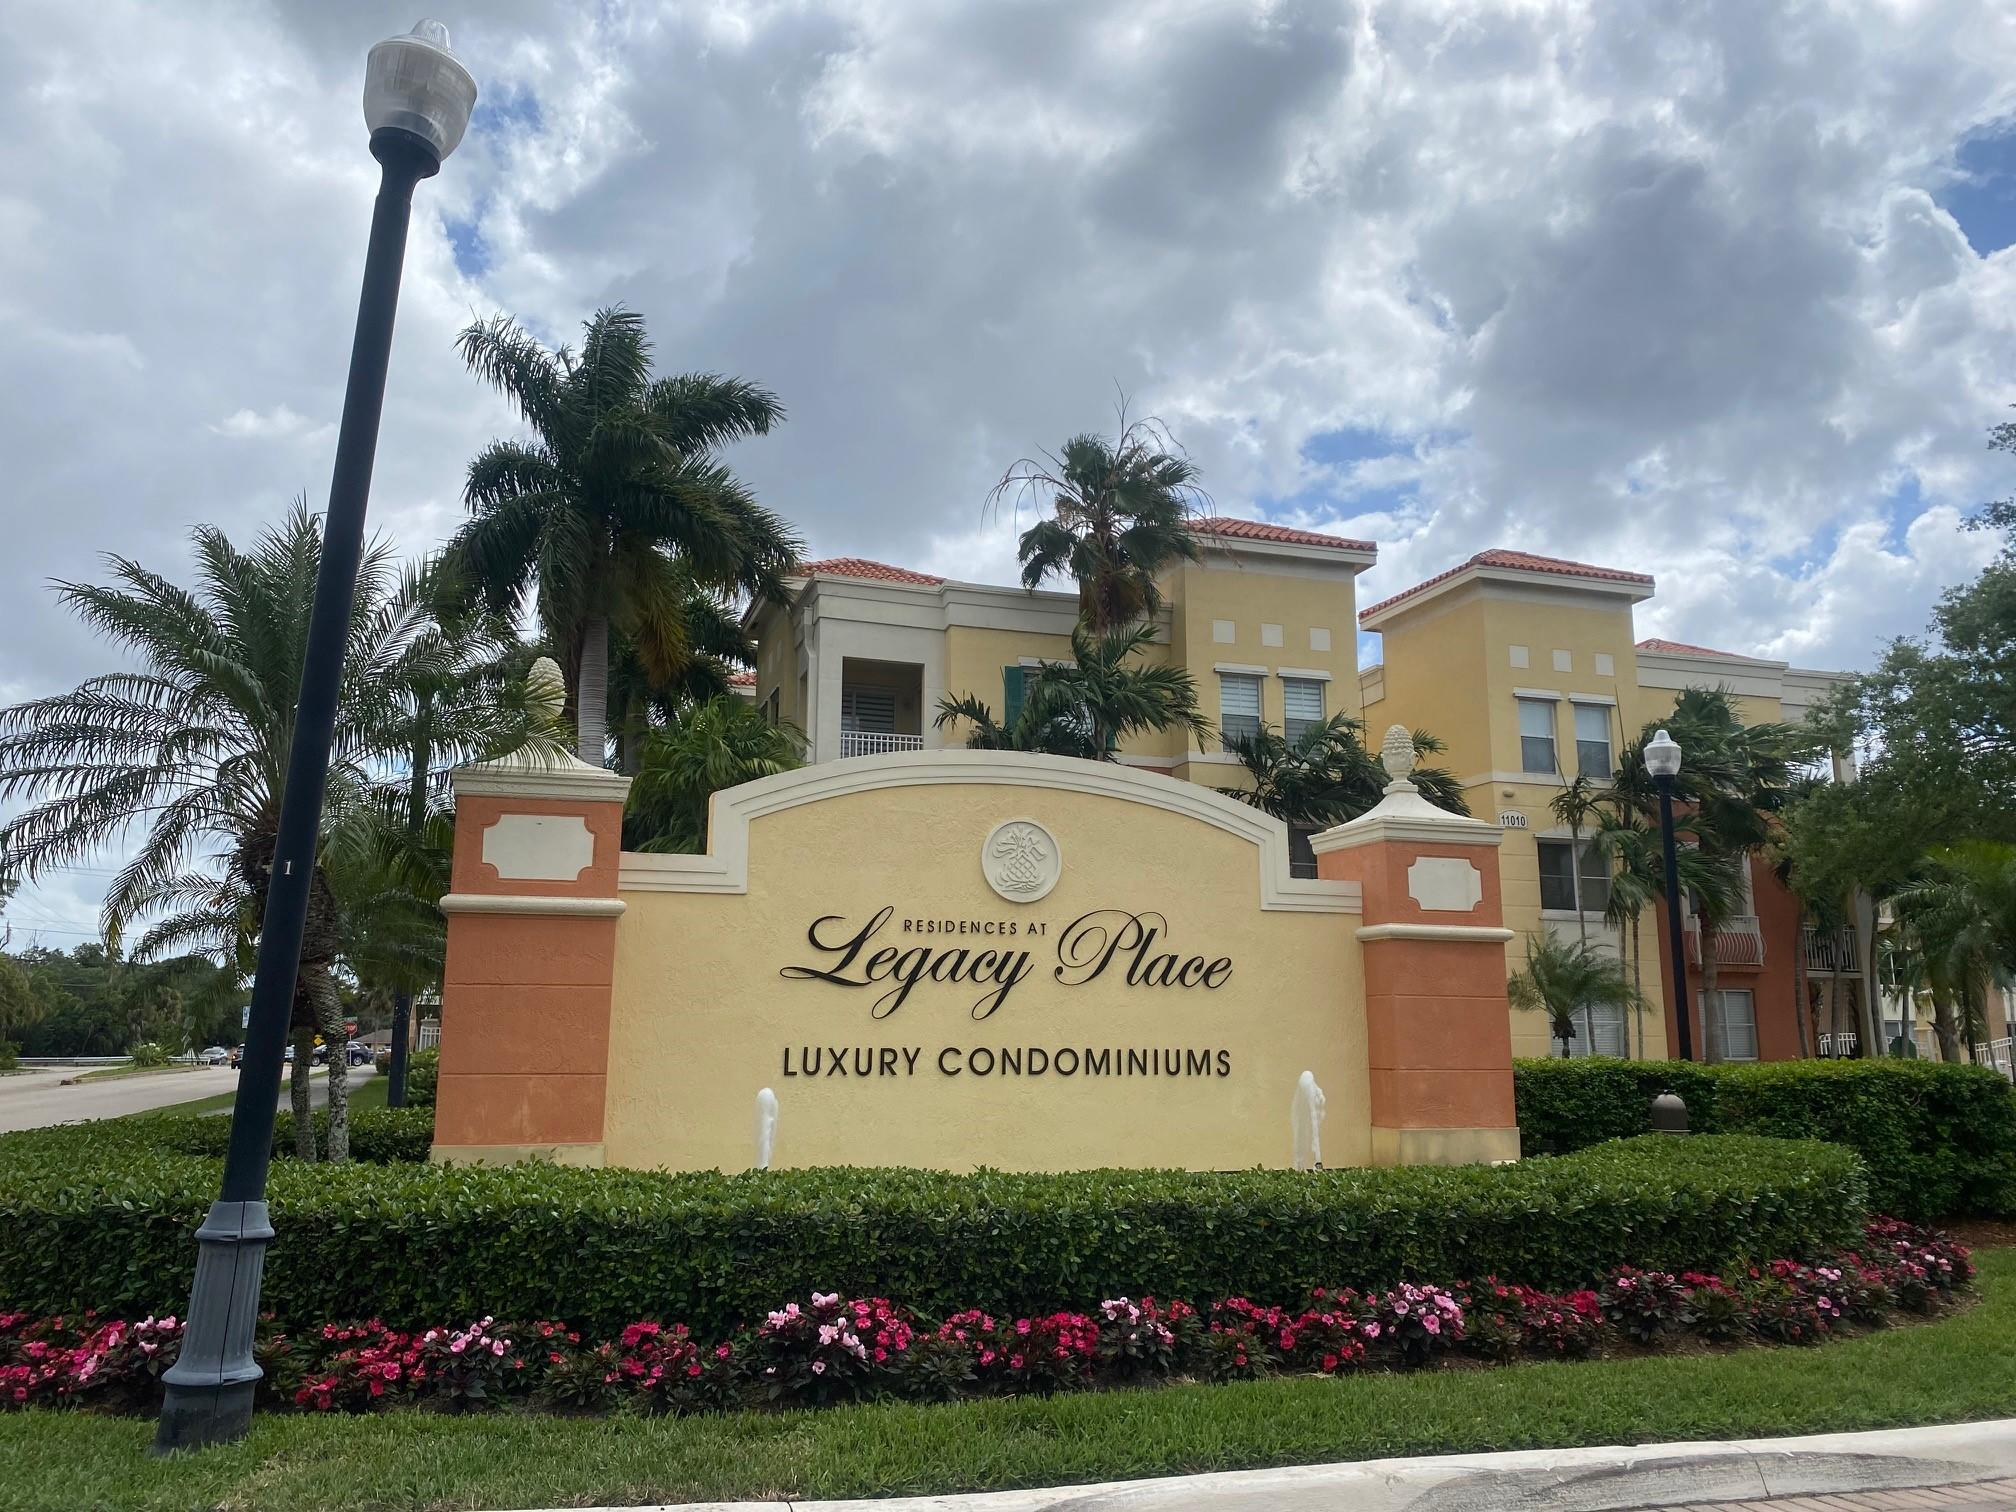 Spacious 3 bedroom, 2 bathroom, luxury condominium located in the desired Palm Beach Gardens' Legacy Place. Unit features tile throughout, granite eat-in kitchen, 2nd Bedroom can be utilized as a 2nd Master Bedroom, and Community resort Pool, Spa, Conference Room, Fitness Center, and much more. Near the Palm Beach Gardens Mall, Shopping, restaurants, Beach, Highways, and entertainment.